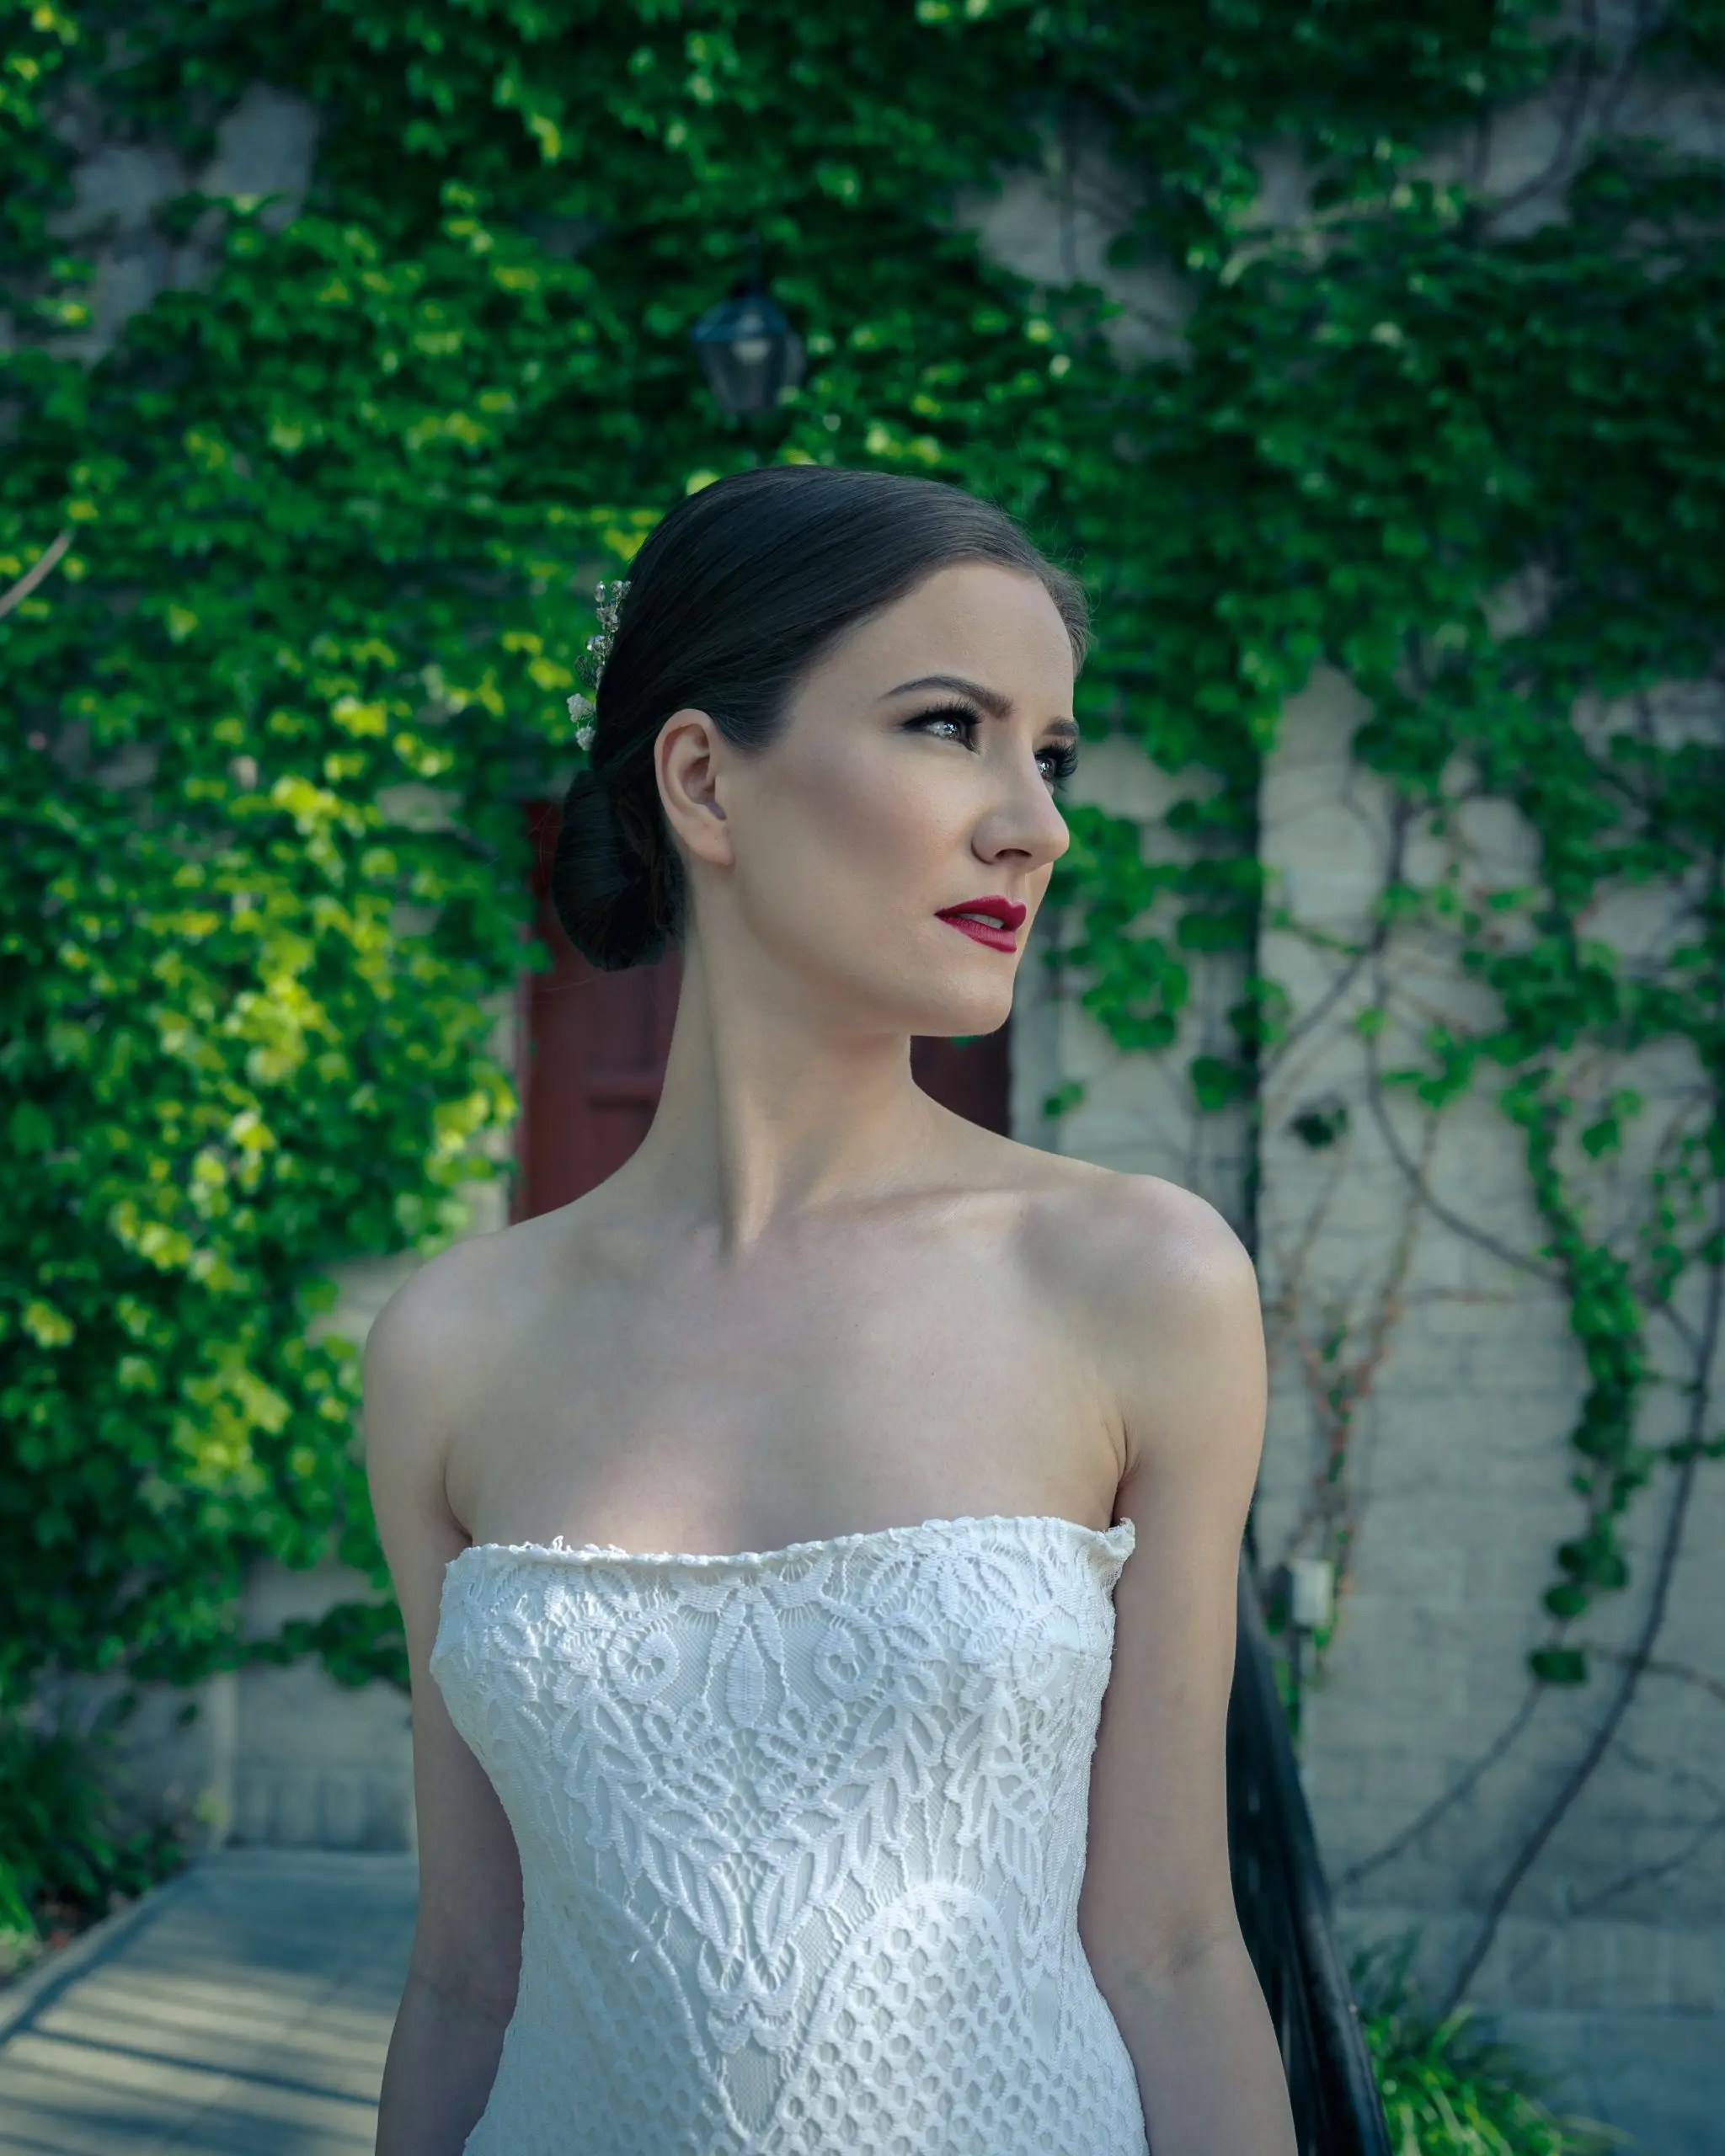 Bride poses in front of a church in Los Angeles. This Photoshoot was done to demonstrate my skills along with the hair and make up artist for bridal photography.